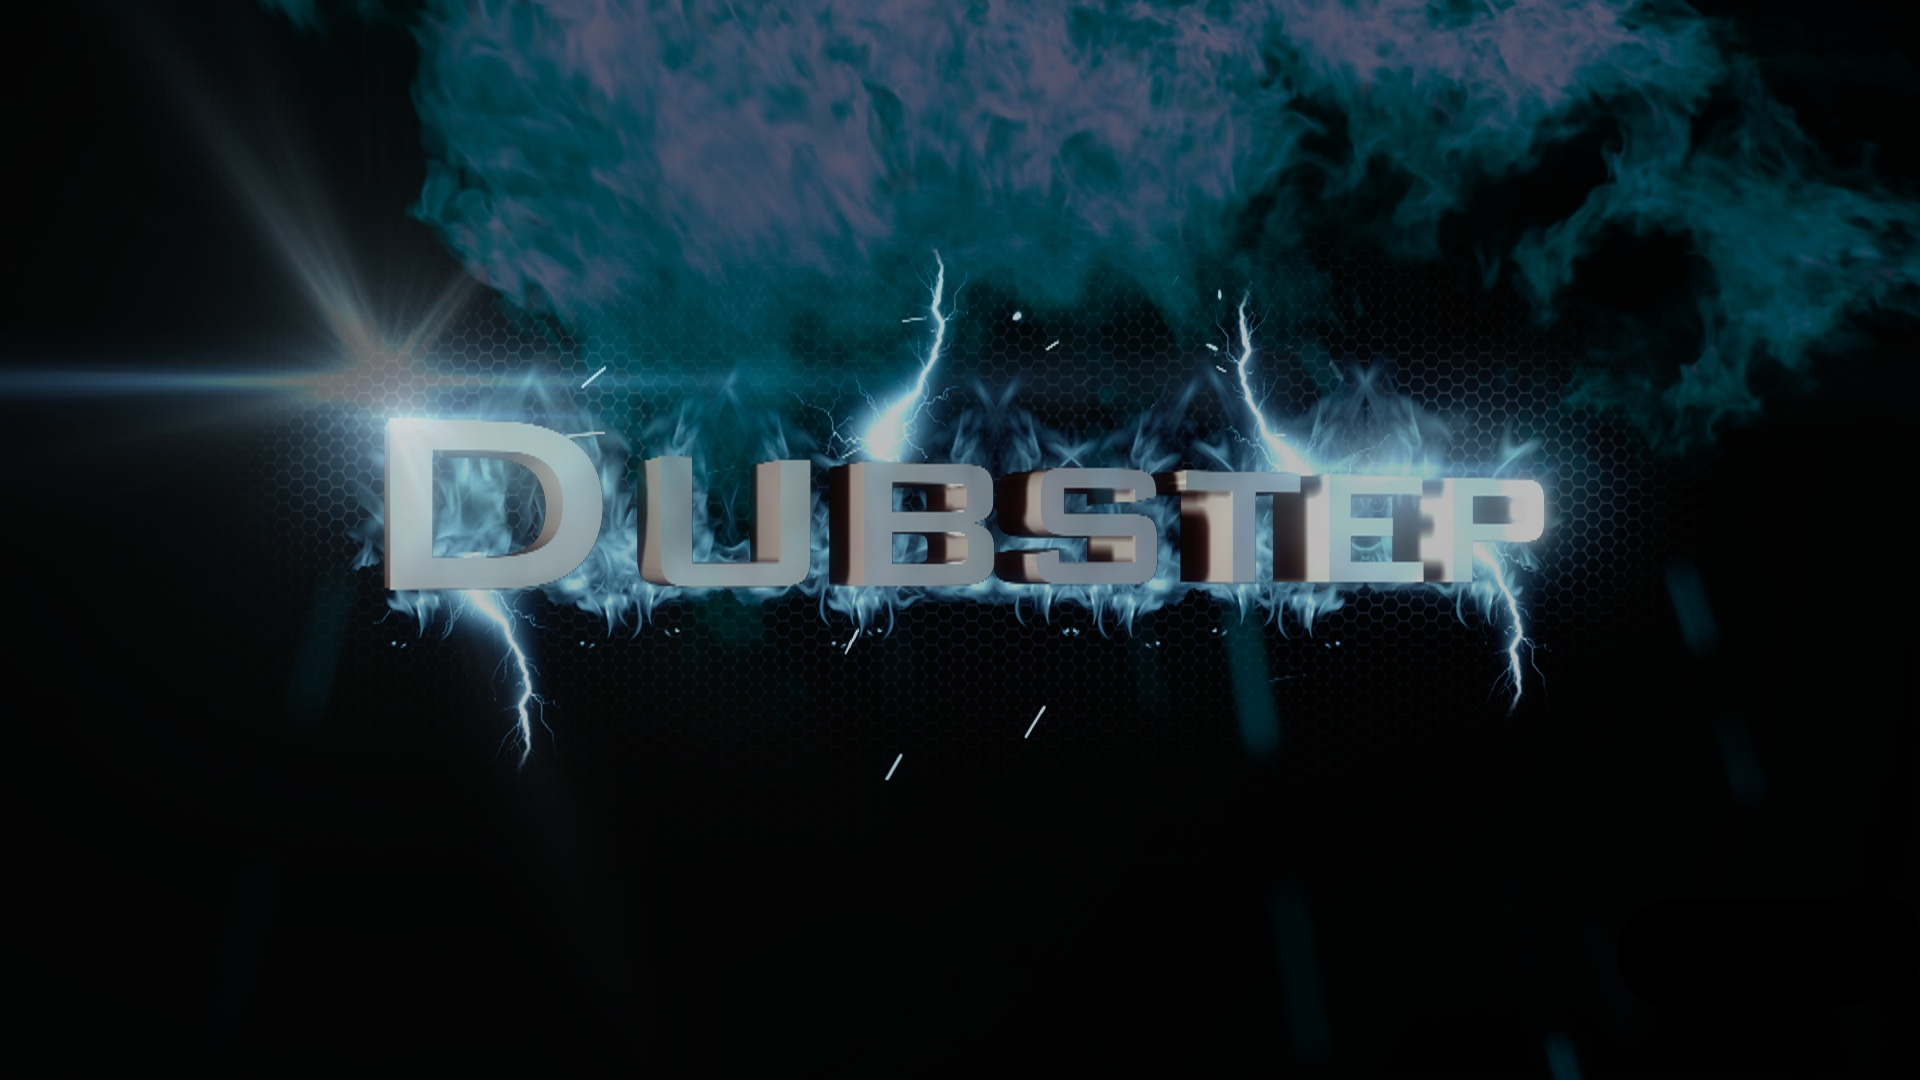 Musica Electronica Wallpapers 3d Dubstep Hd Wallpaper Background Image 1920x1080 Id